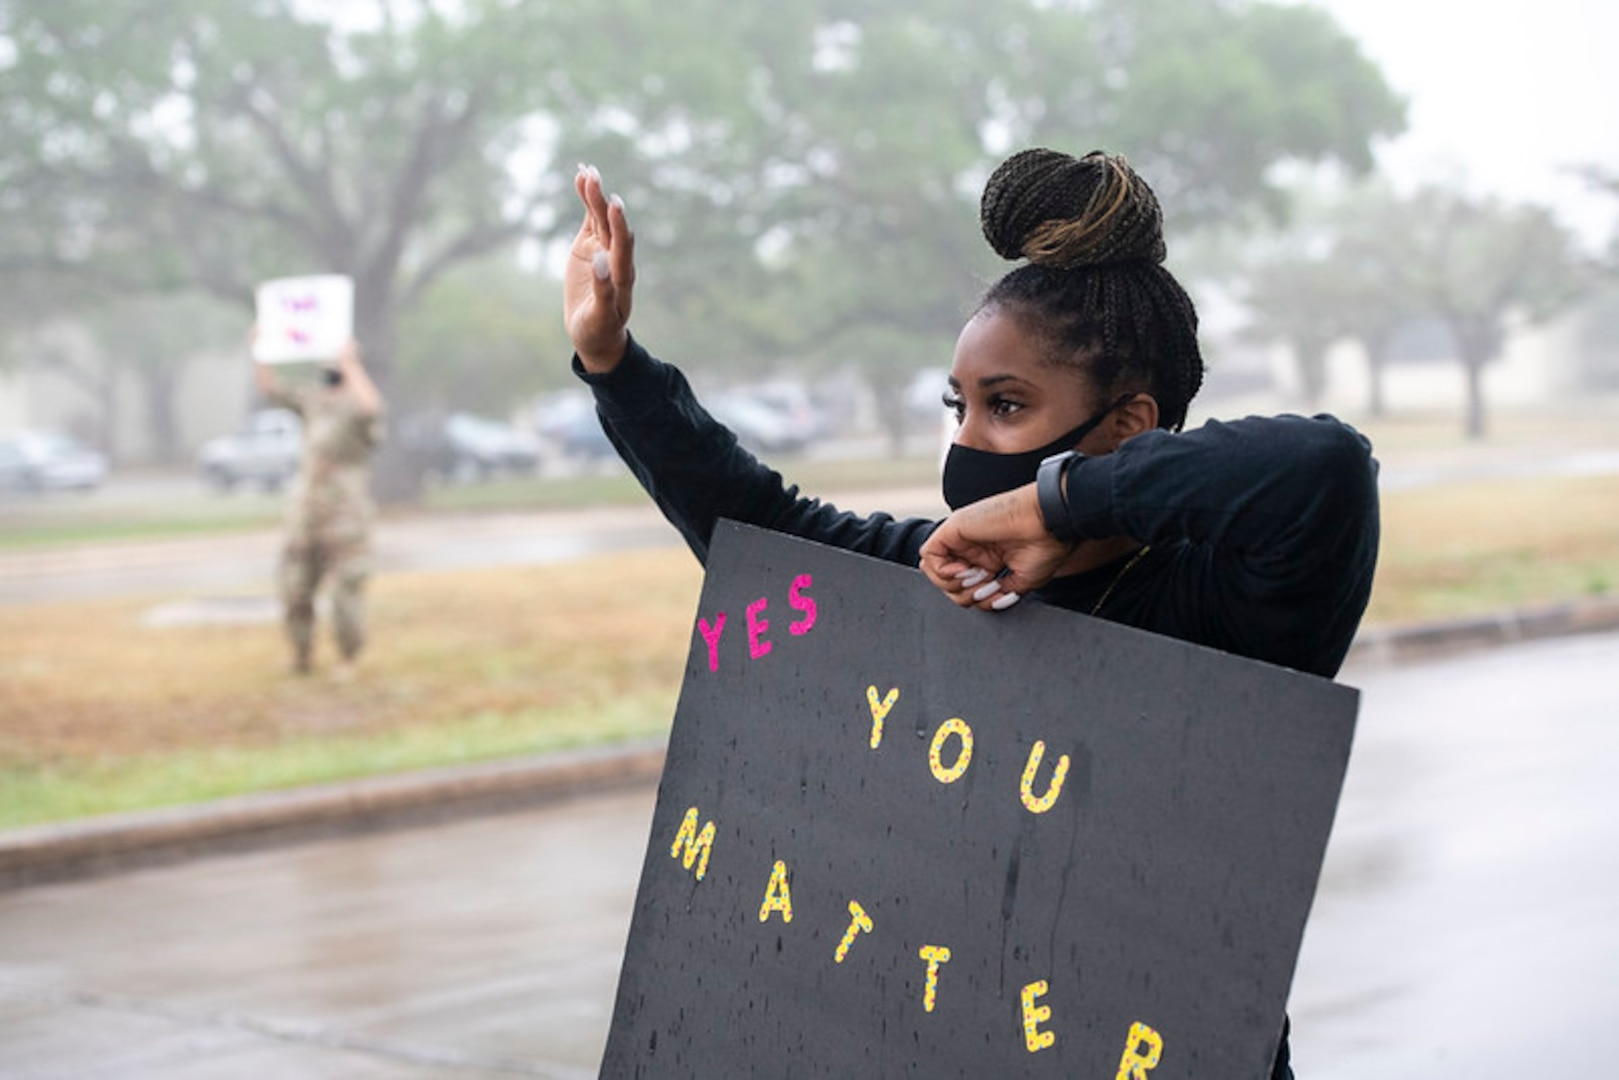 Tech Sgt. Alacia Hatten holds a sign in support of the We Care Day event April. 16, 2021, at Joint Base San Antonio-Randolph, Texas. The event was in support of Month of the Military Child and Child Abuse awareness month. (U.S. Air Force photo by Sabrina Fine)